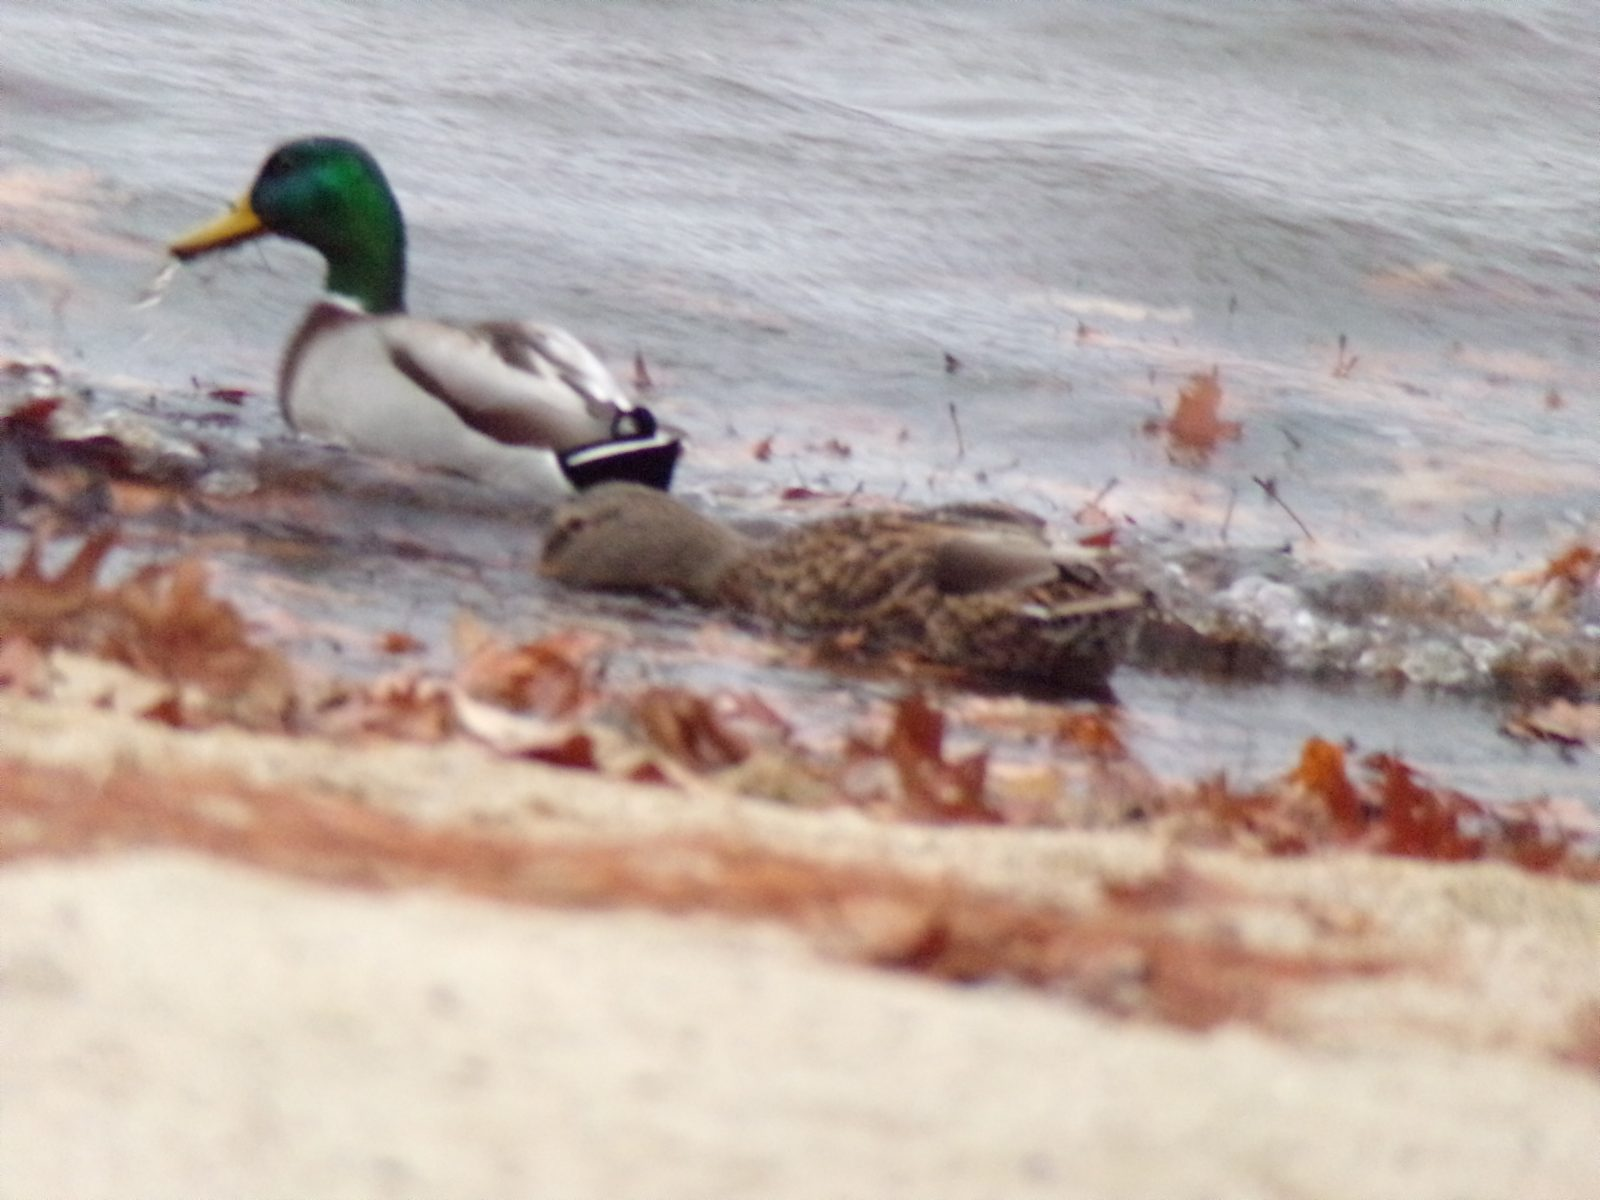 Ducks on beach shore